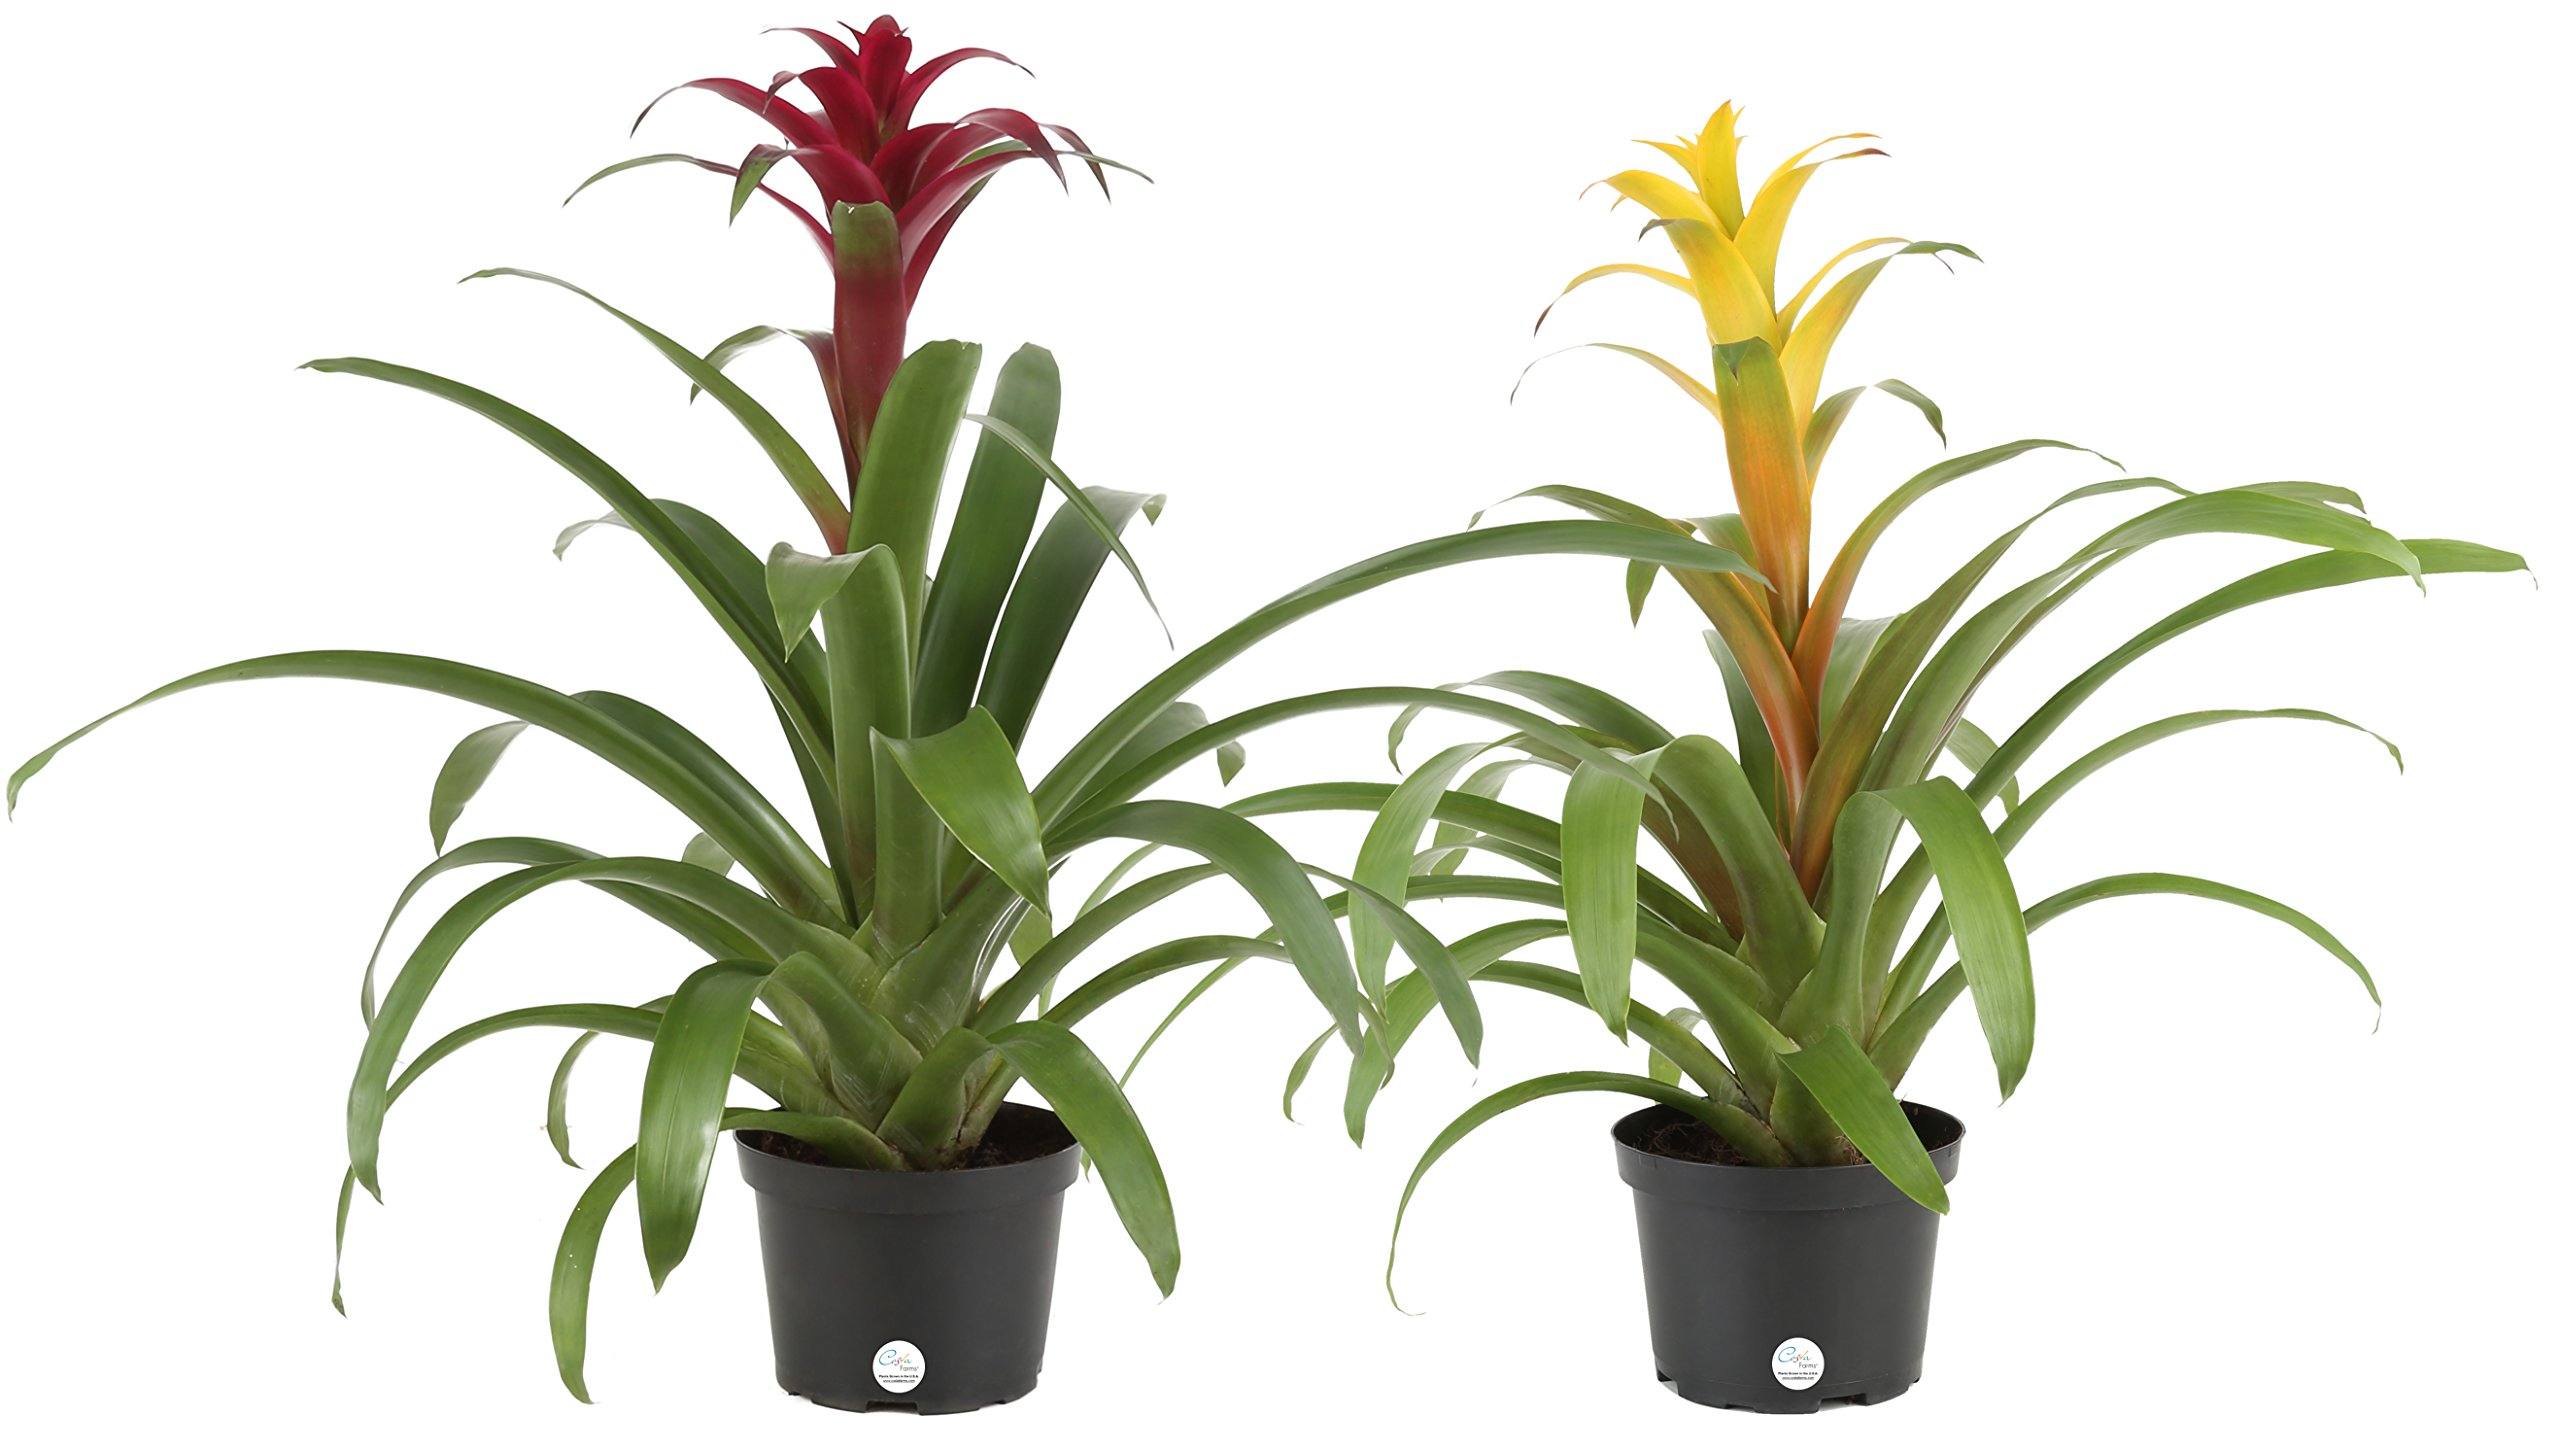 Costa Farms Live Bromeliad Indoor Tabletop Plant, 2-Pack in 6-Inch Grower's Pot, Grower's Choice - Red, Pink, Orange, Yellow